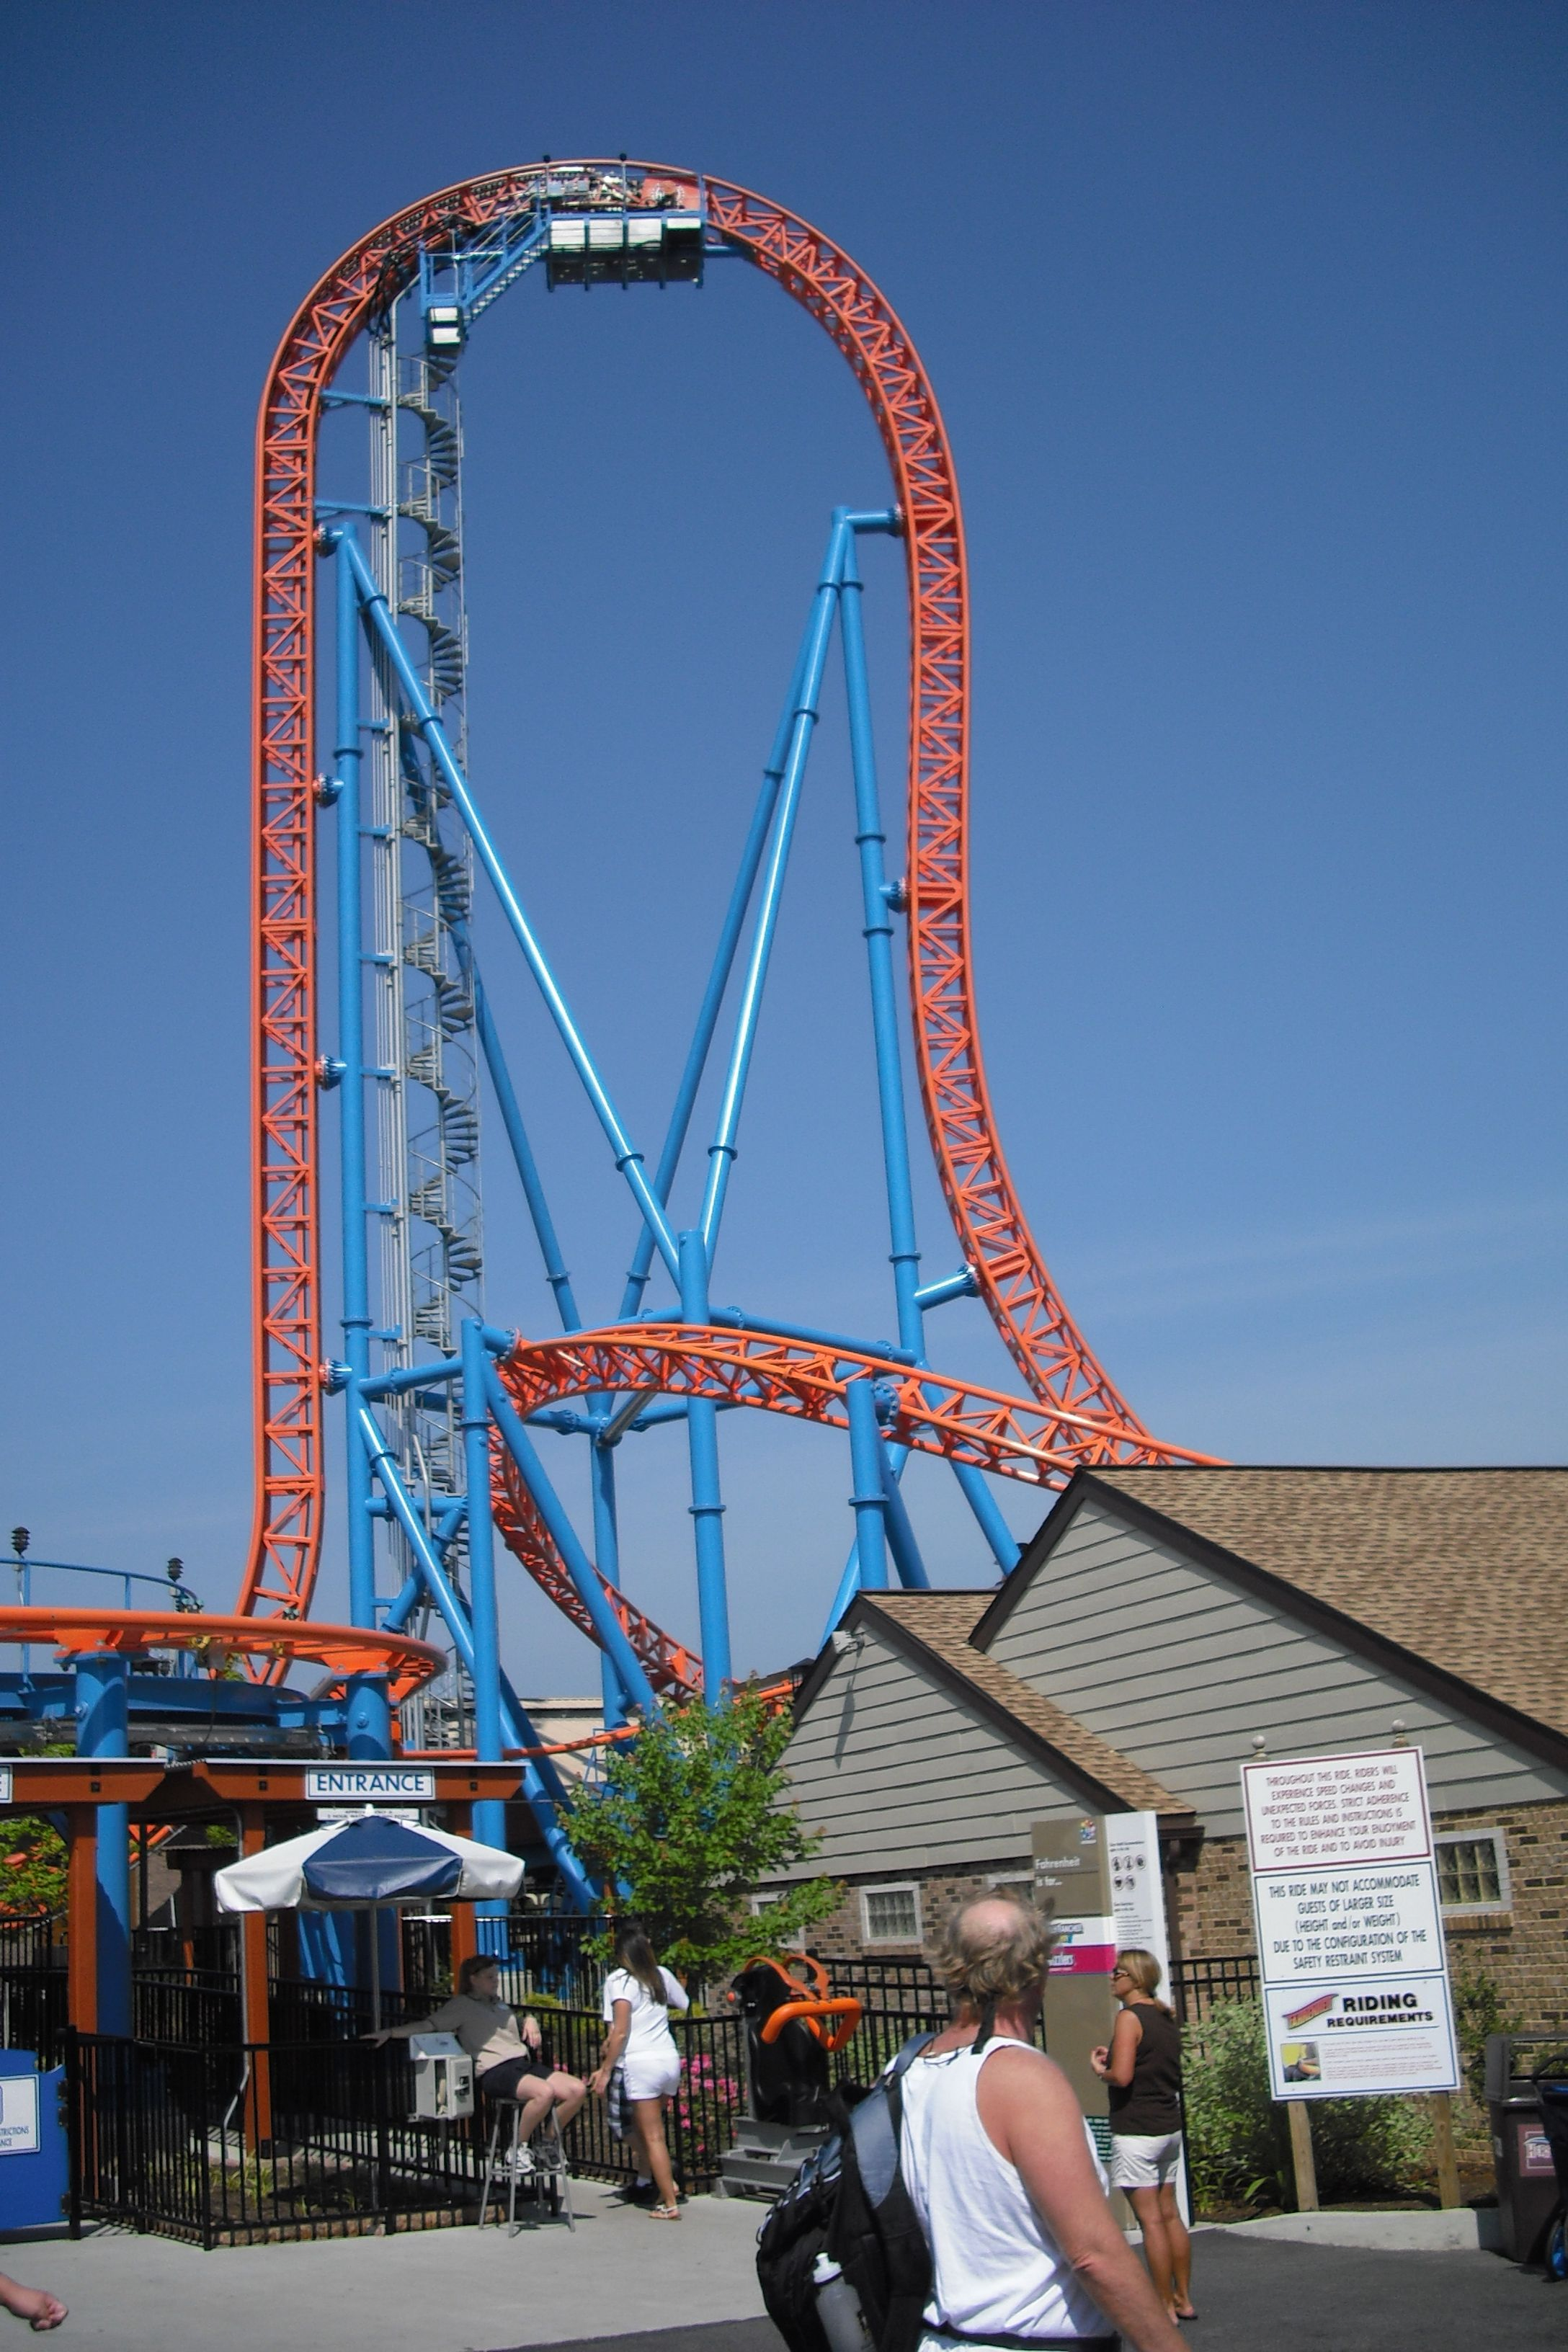 63767c1a7cfb1a54b0b29d5e67dc2ea8 - Busch Gardens Ride Height Requirements Inches